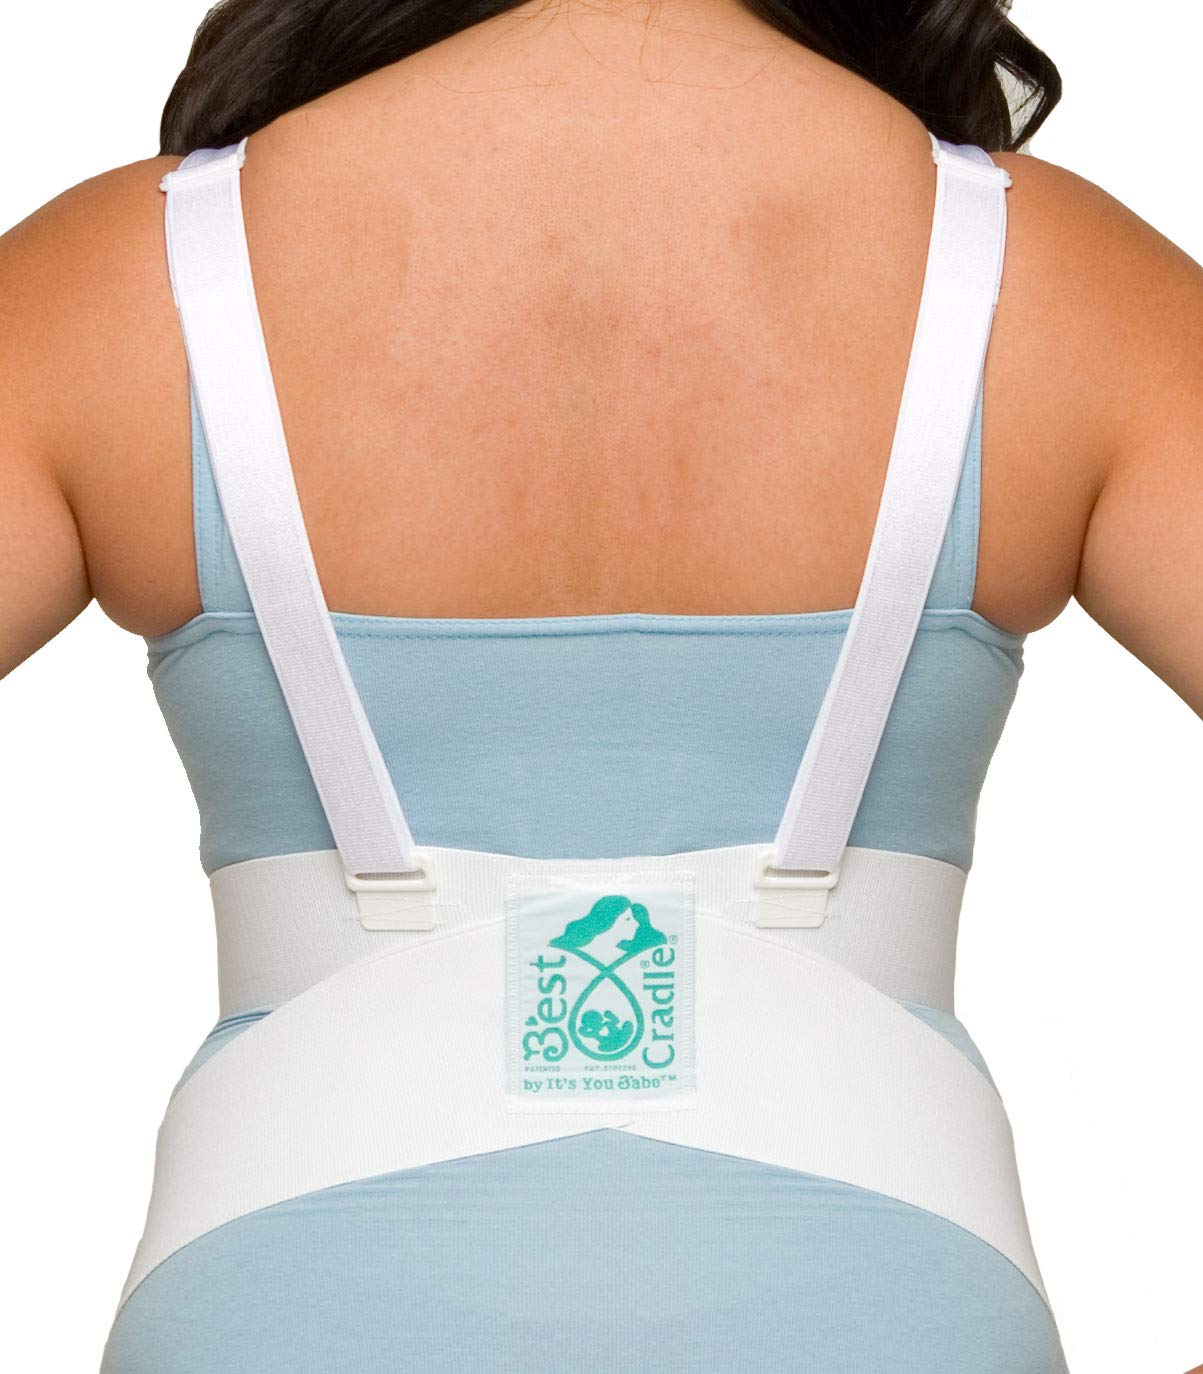 It's You Babe Best Cradle | Medical Grade Belly Band for Pregnancy Support & Pain Relief | Maternity Support Belt | Reimbursable FSA/HSA | Award Winning Pregnancy Belt, Medium by It's You Babe (Image #1)